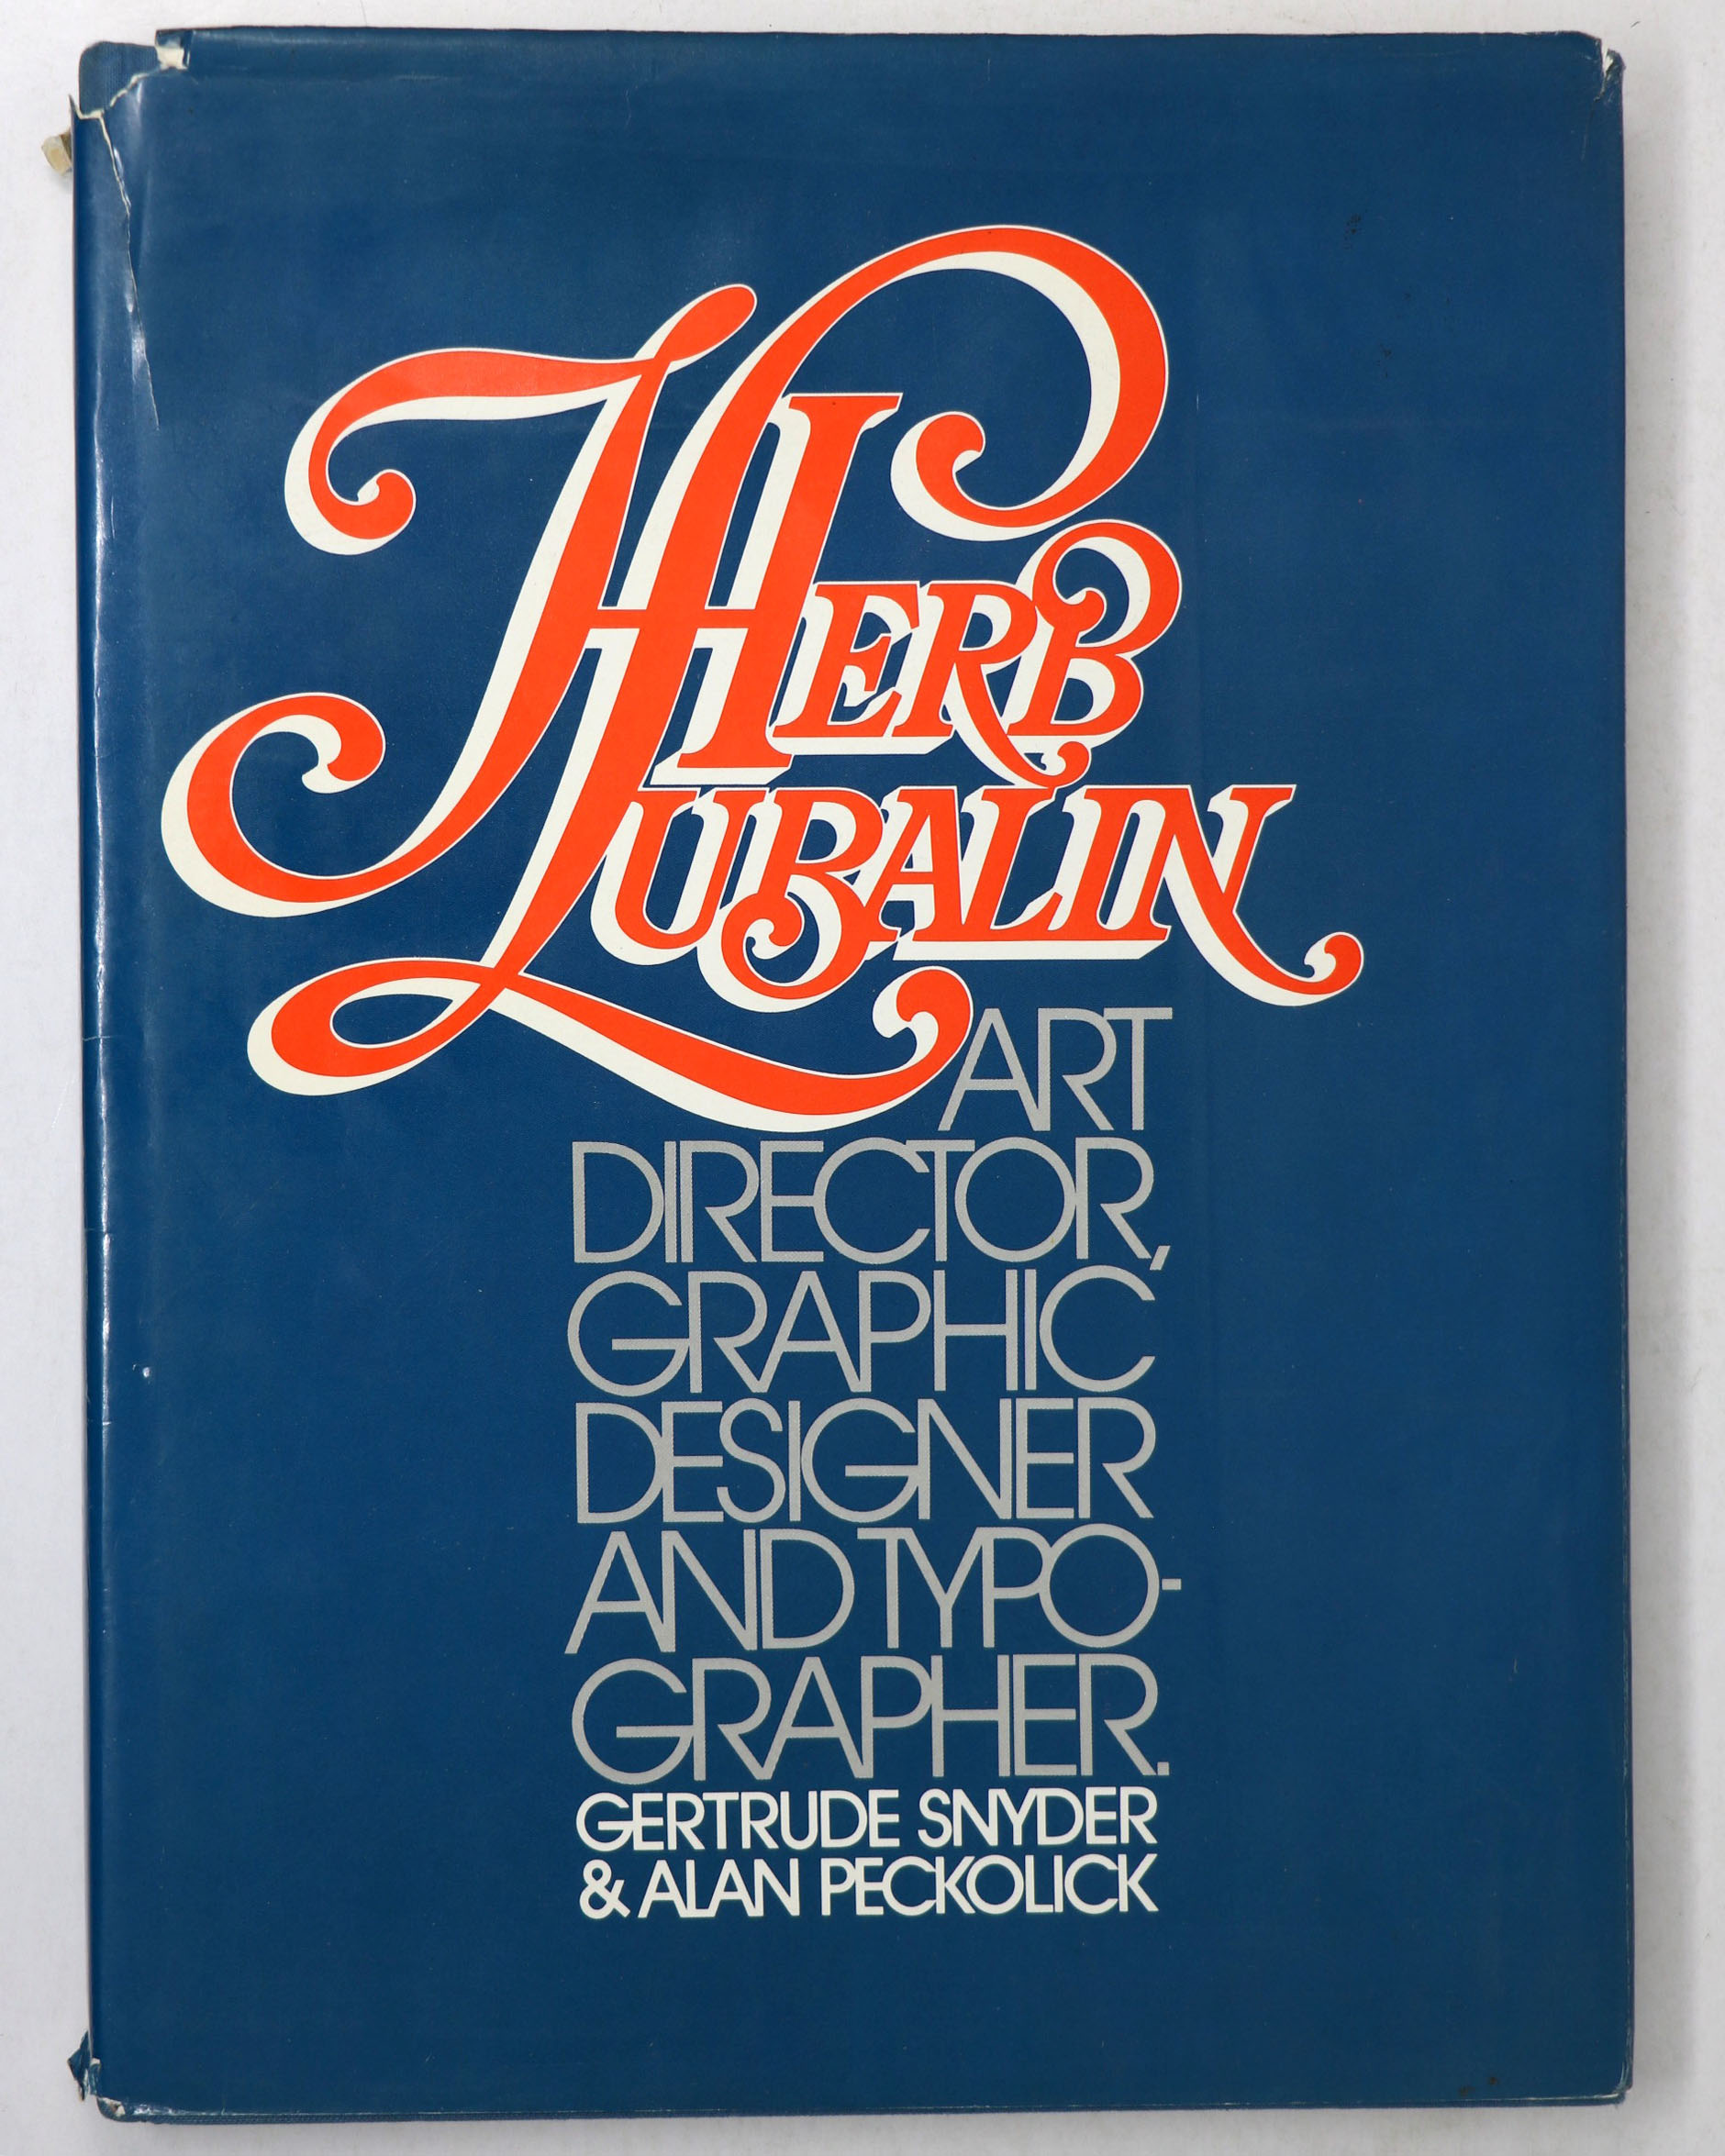 Herb Lubalin: Art Director Graphic Designer and Typographer